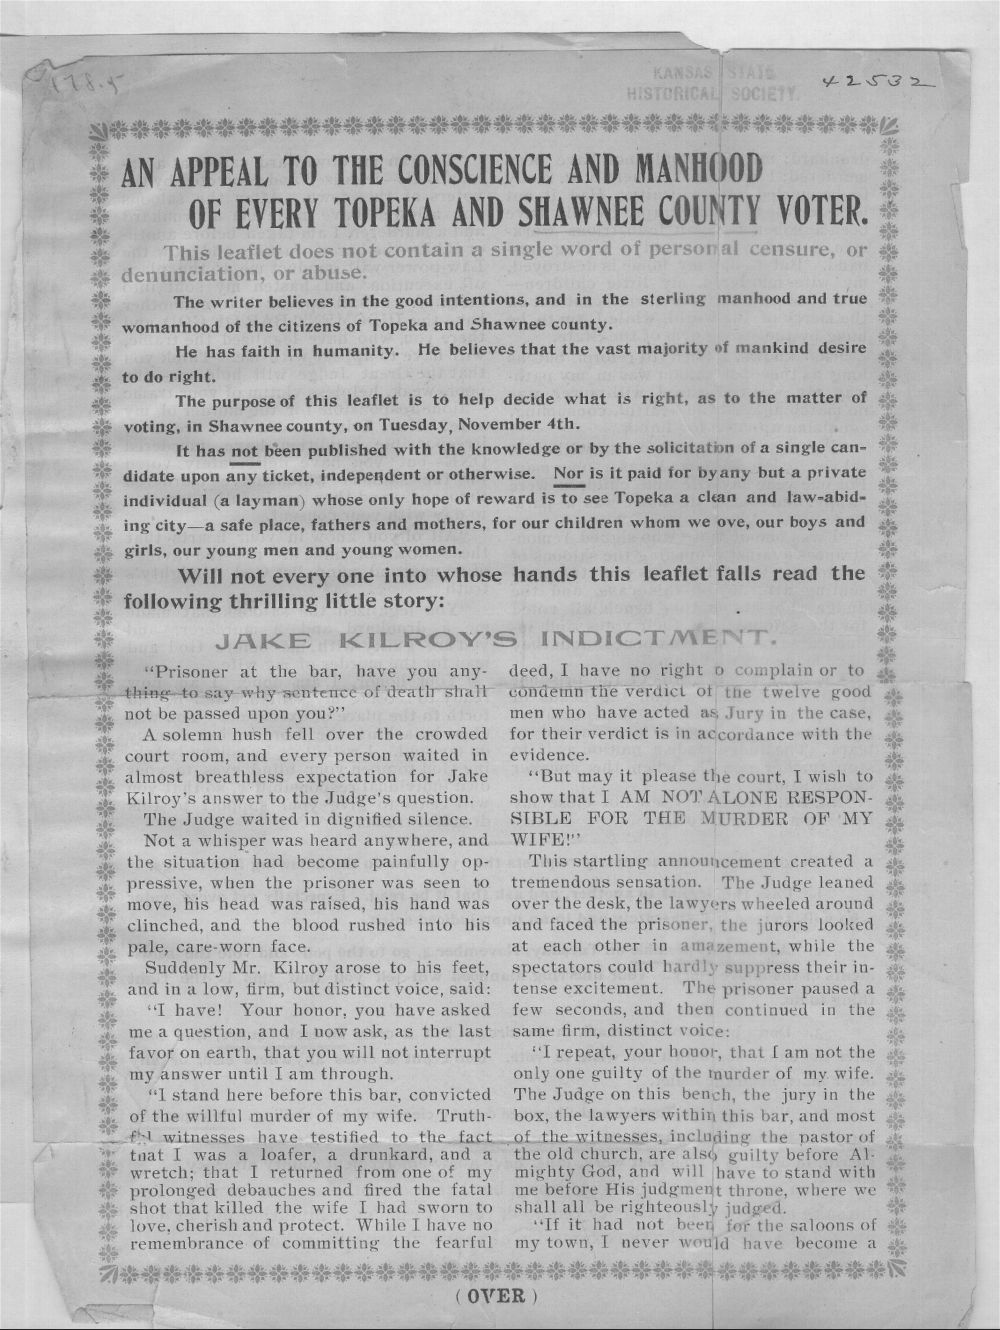 An appeal to the conscience and manhood of every Topeka and Shawnee County, Kansas, voter - 1